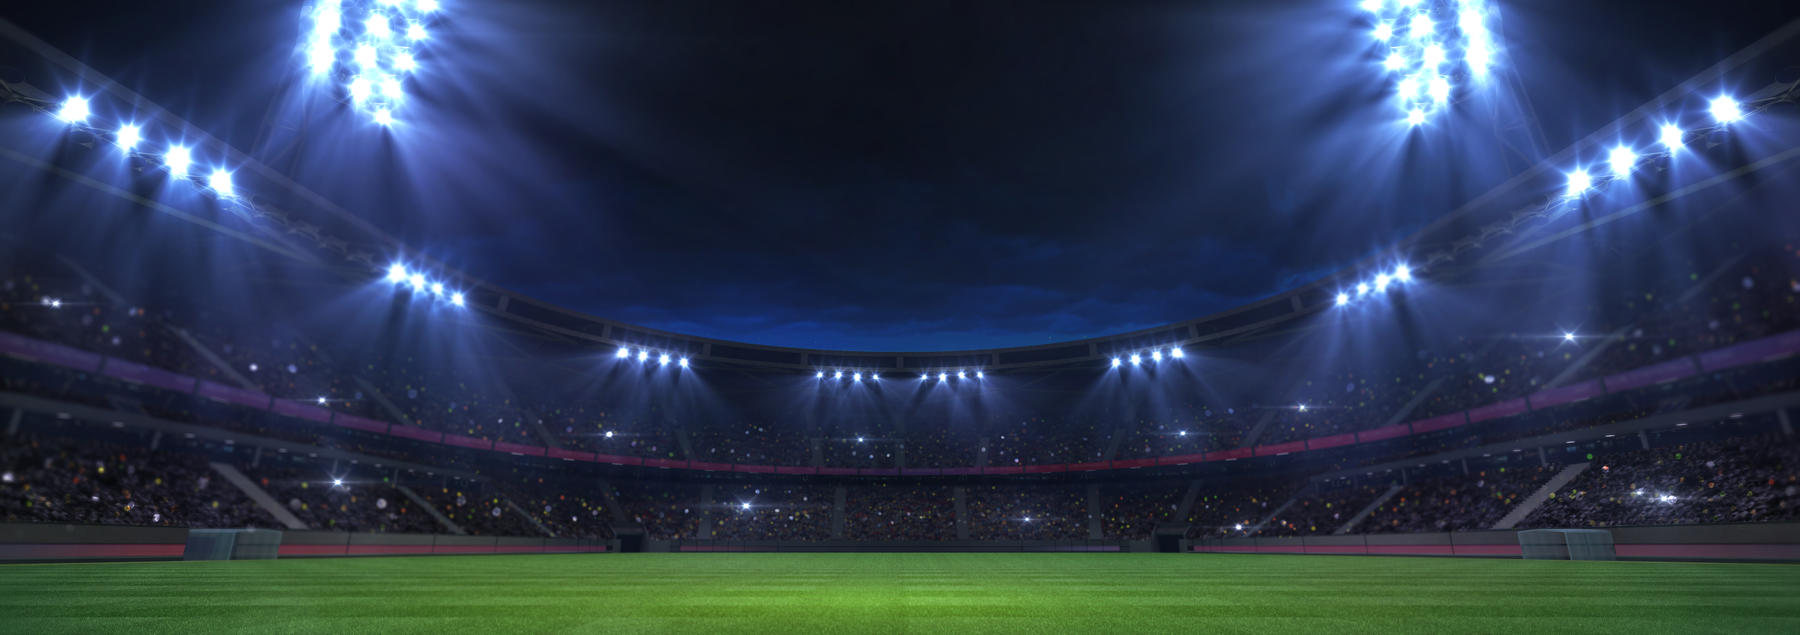 Lit up football field